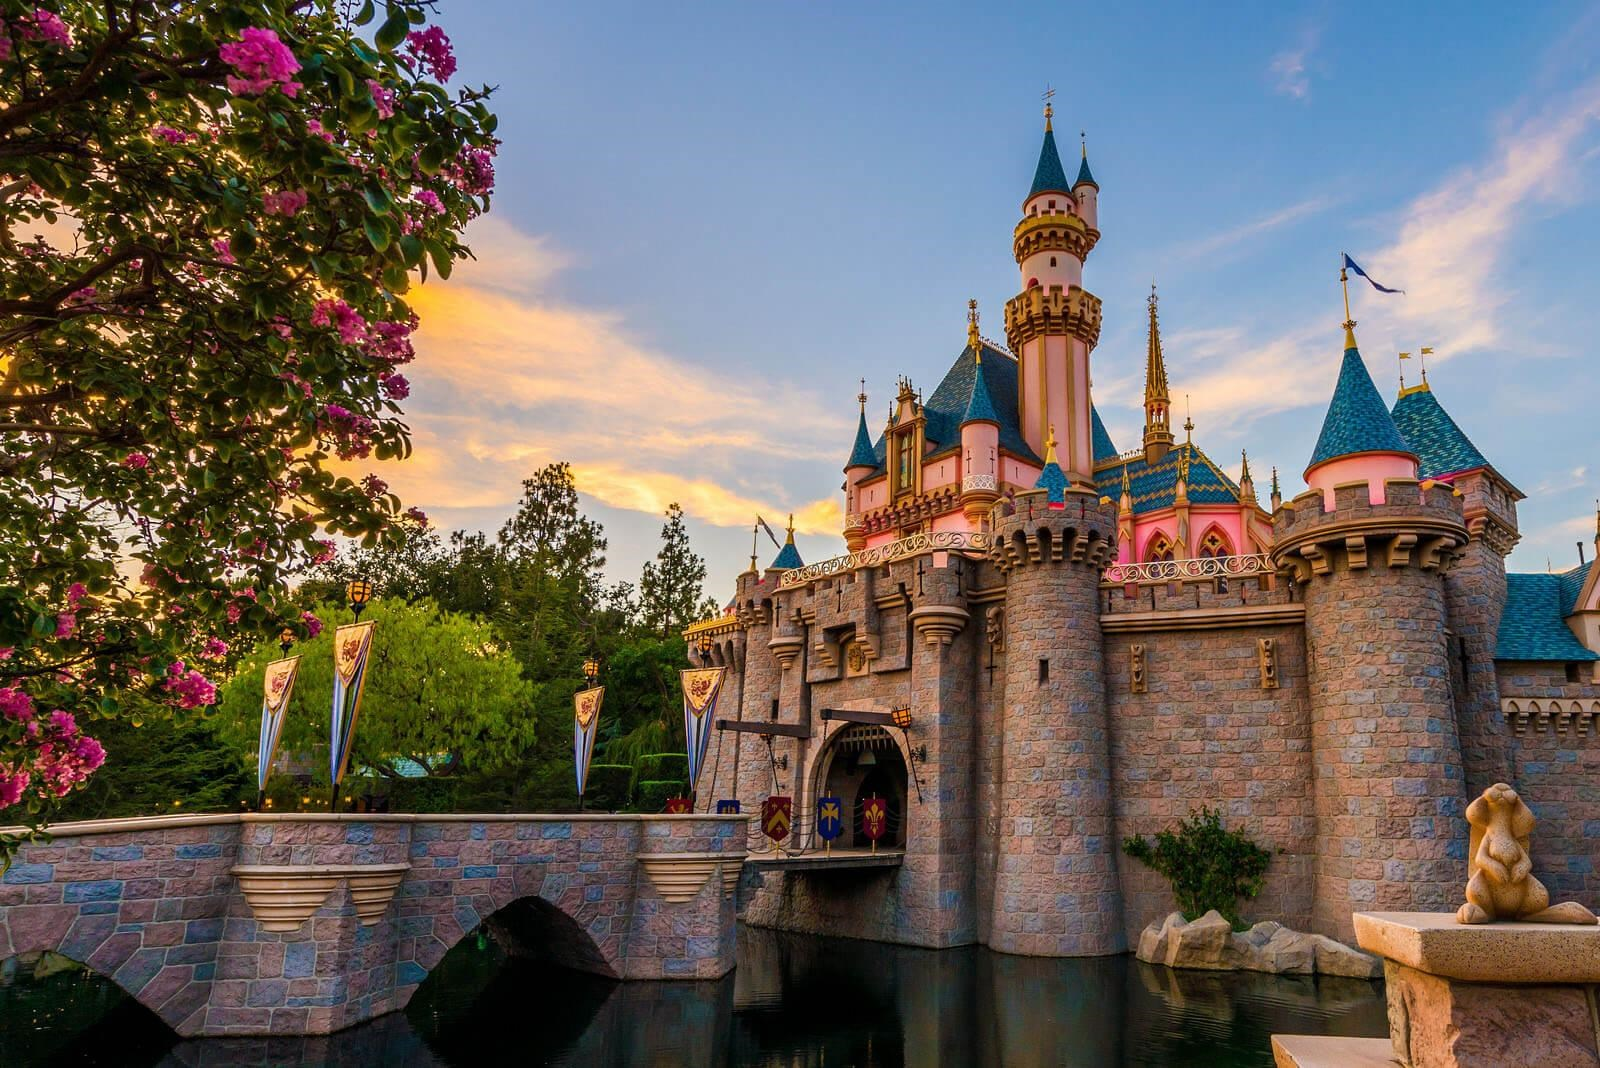 disney land Disneyland park, originally disneyland, is the first of two theme parks built at the disneyland resort in anaheim, california, opened on july 17, 1955it is the only theme park designed and built to completion under the direct supervision of walt disney.